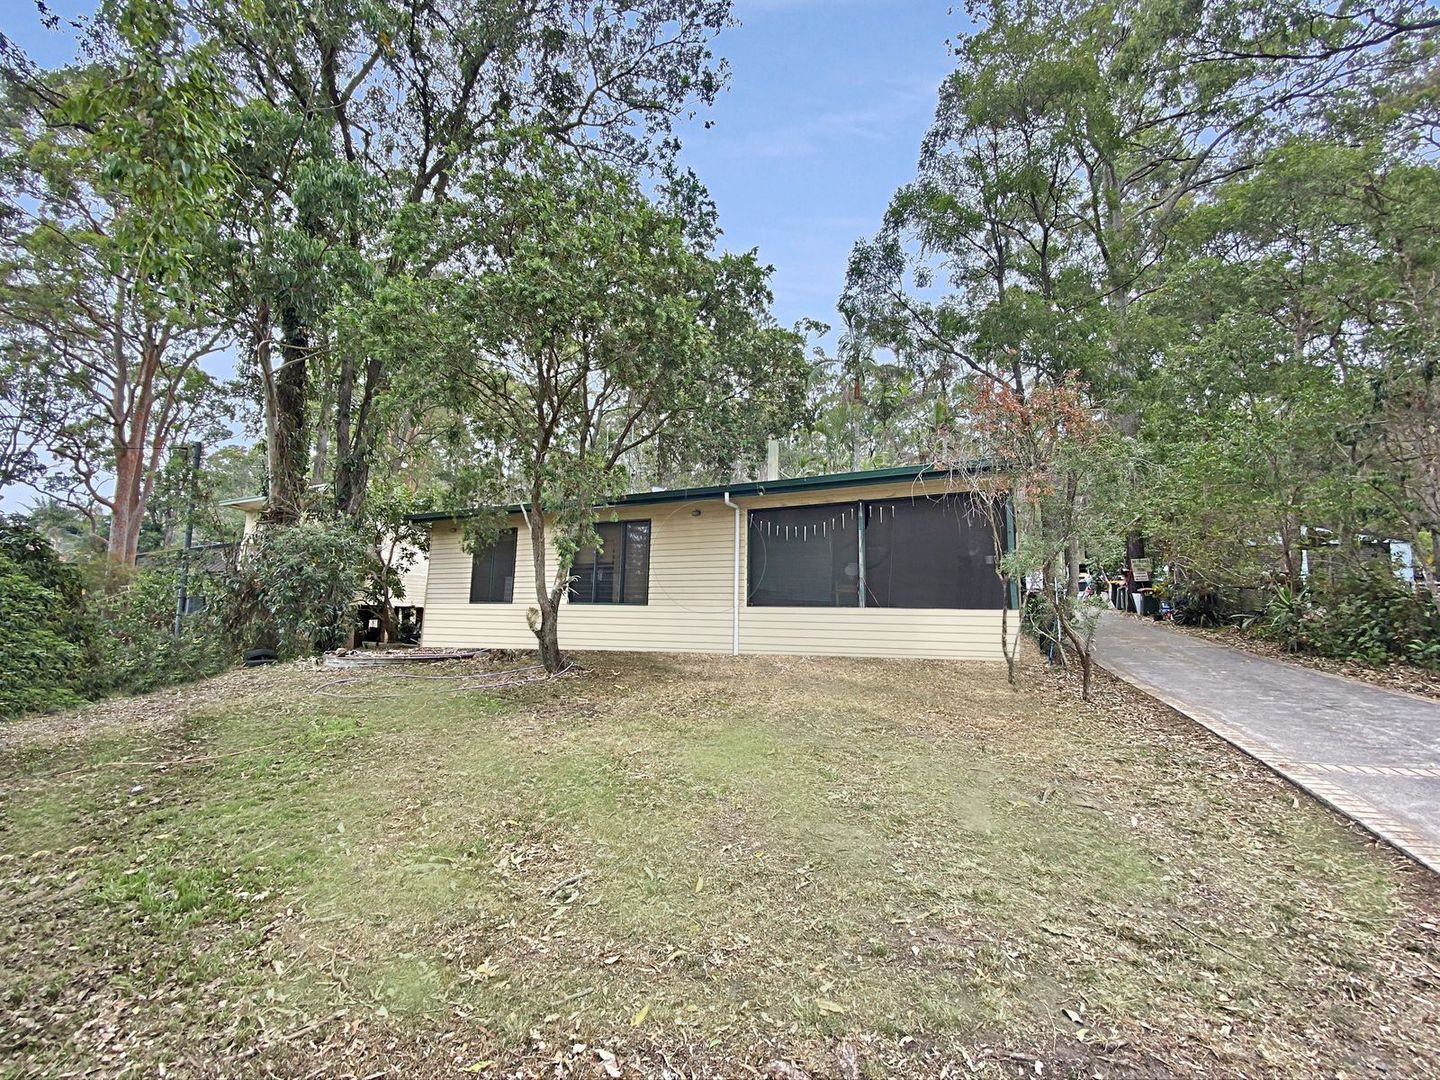 83 Cove Boulevard, North Arm Cove NSW 2324, Image 0